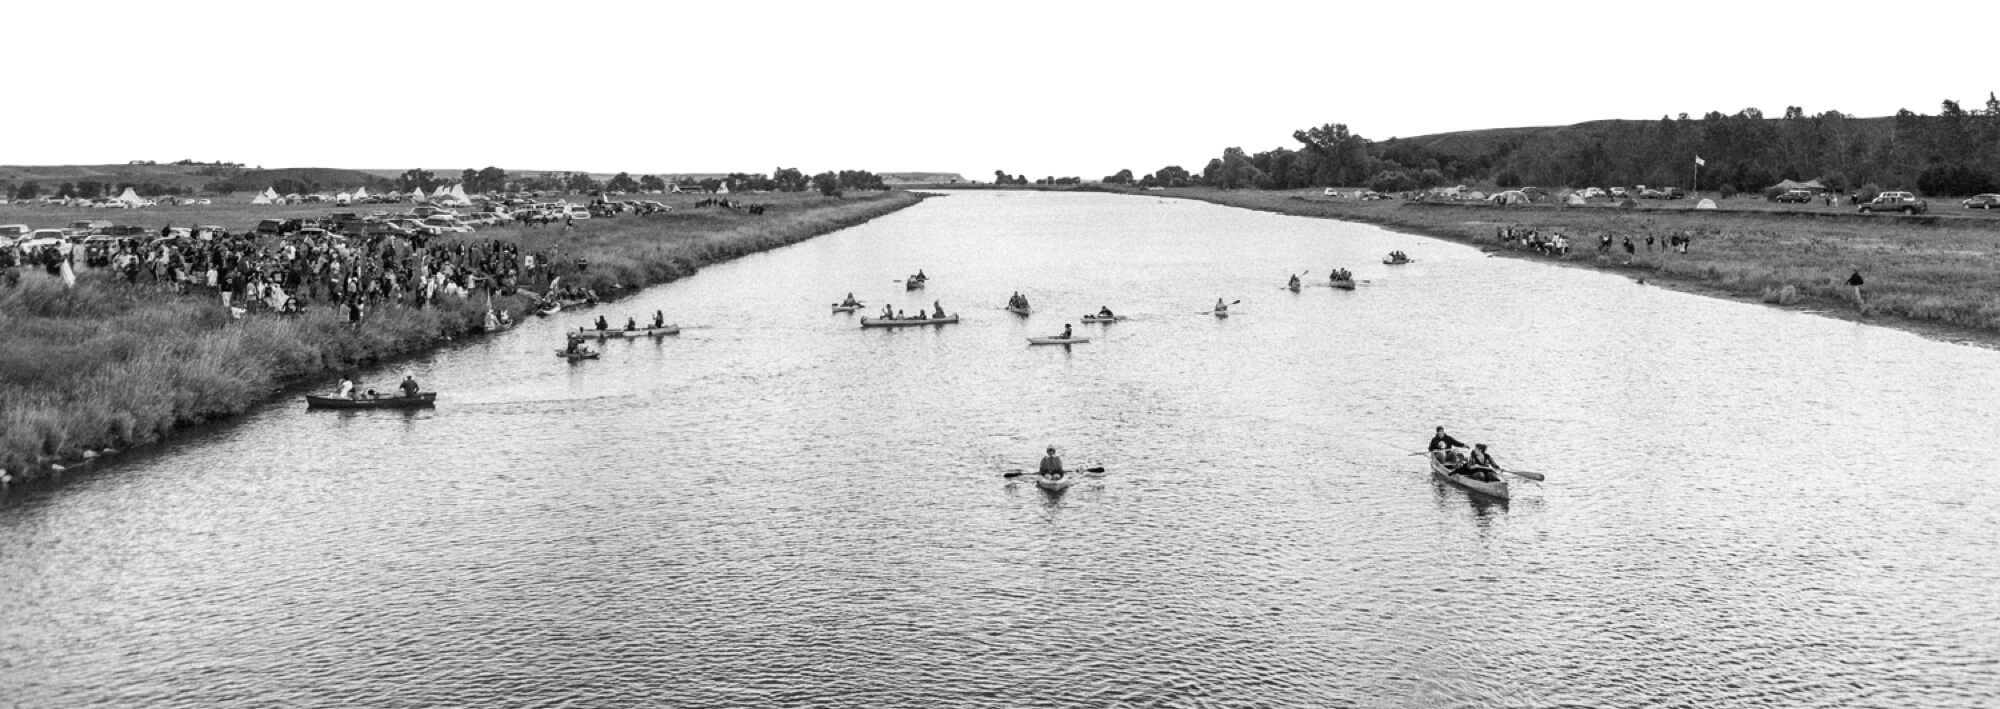 a black and white image of a river